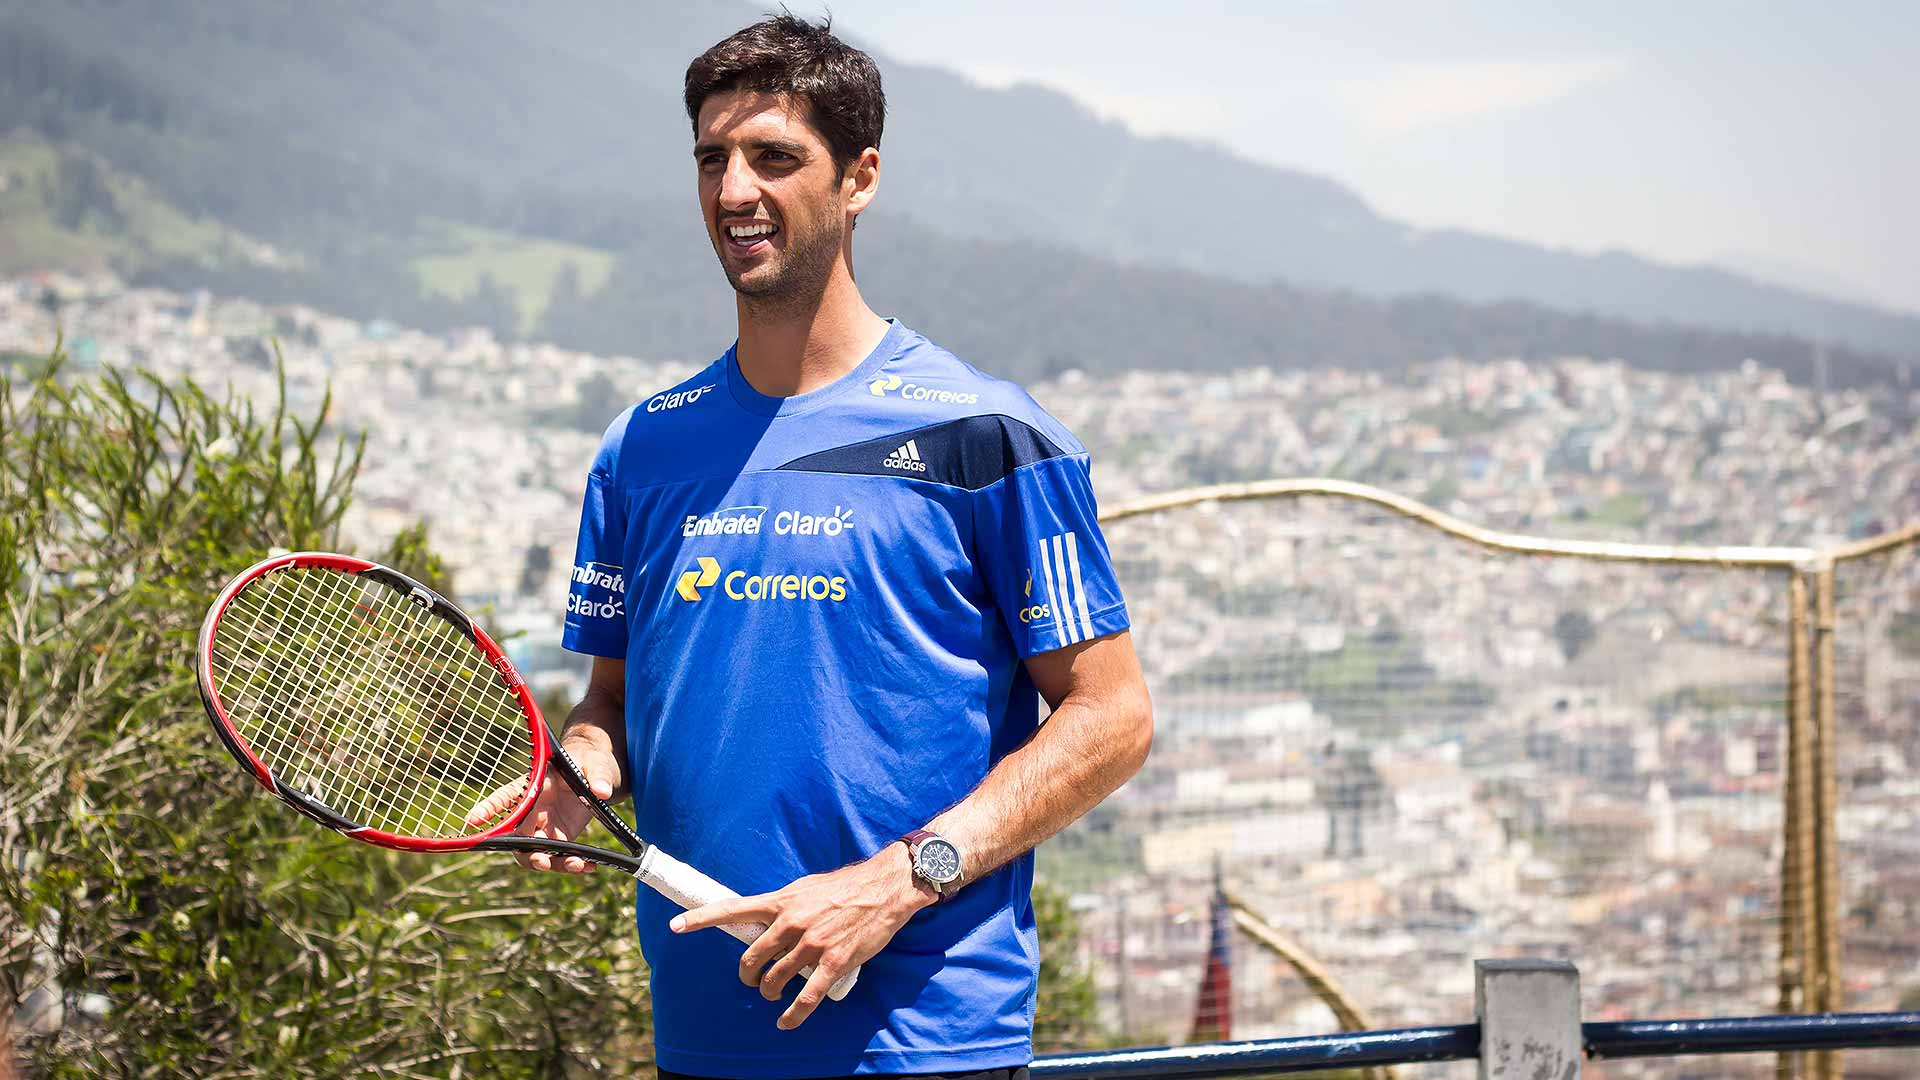 Bellucci takes on local player in Quito